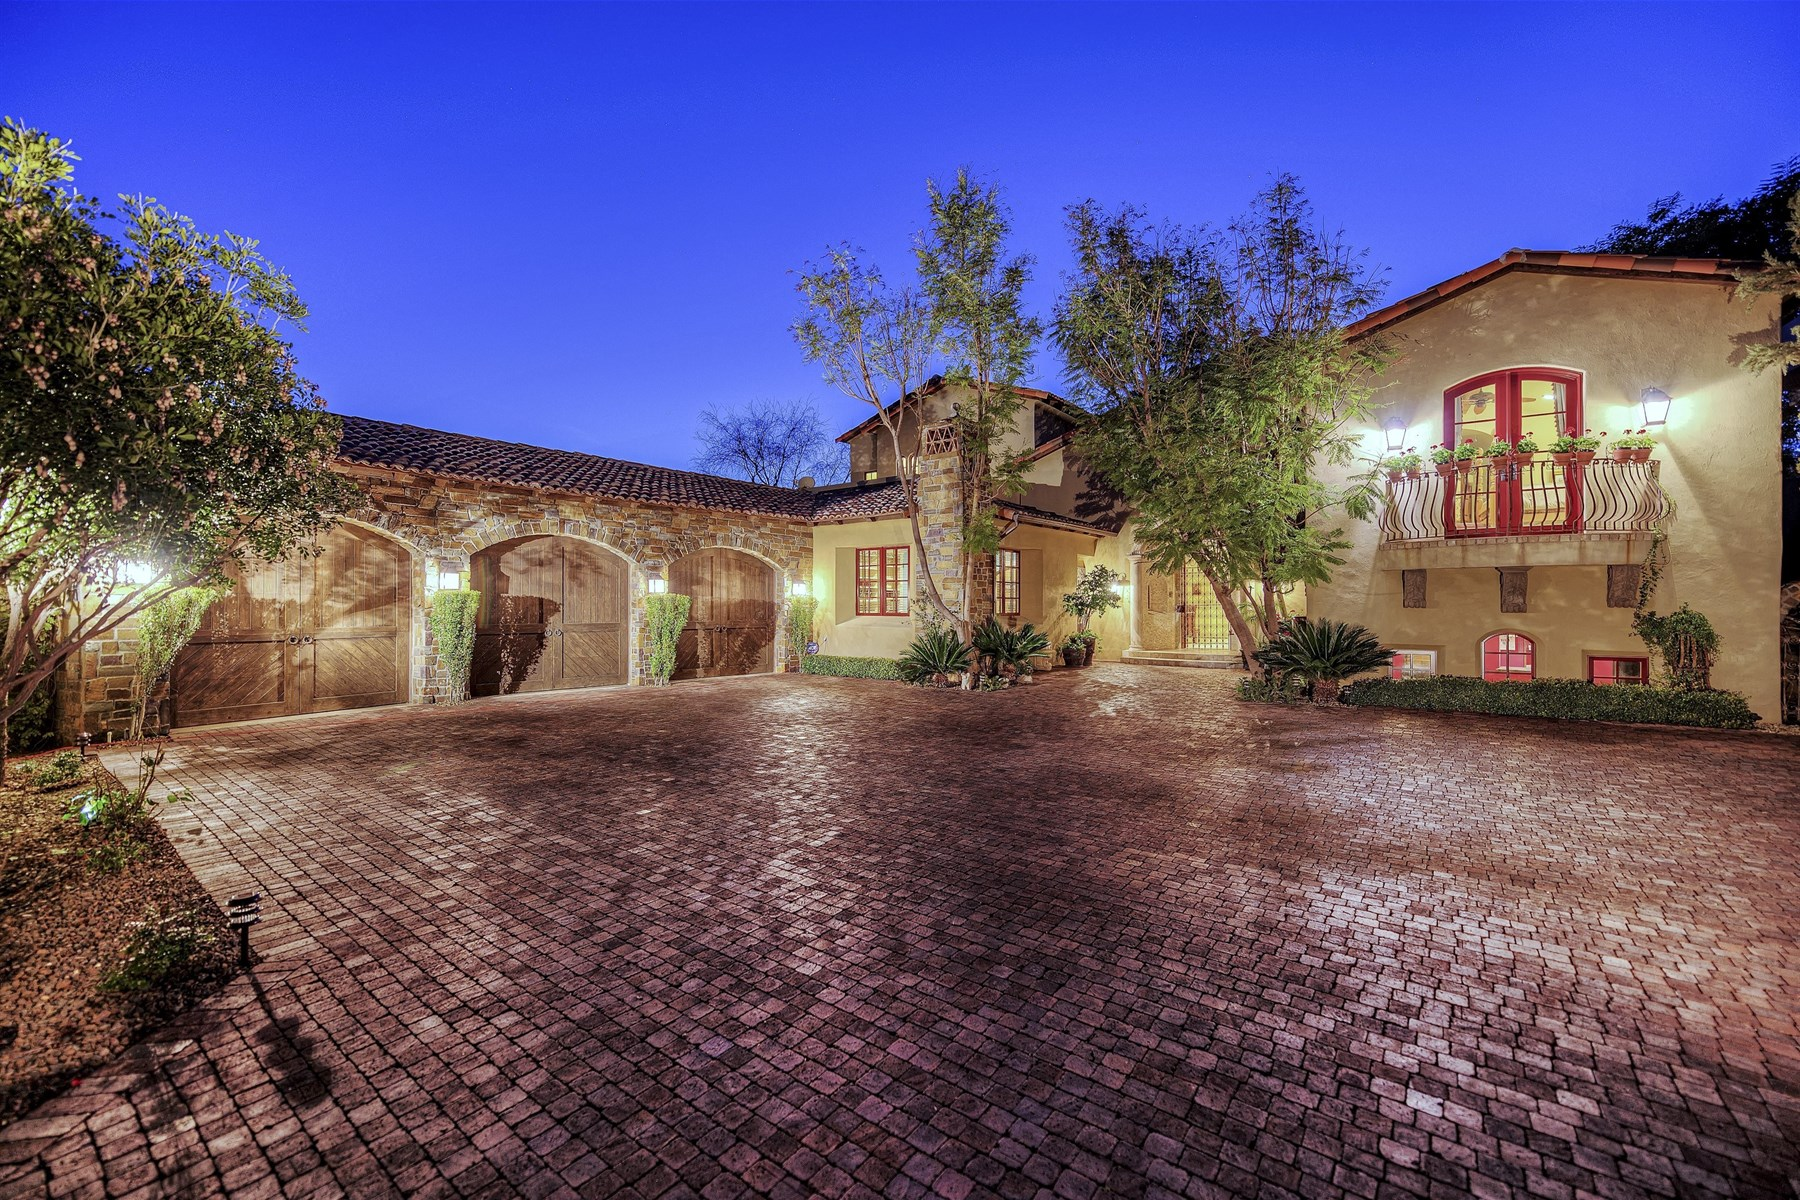 Maison unifamiliale pour l Vente à Romantic custom home on the golf course 5968 E Orange Blossom Ln Phoenix, Arizona, 85018 États-Unis